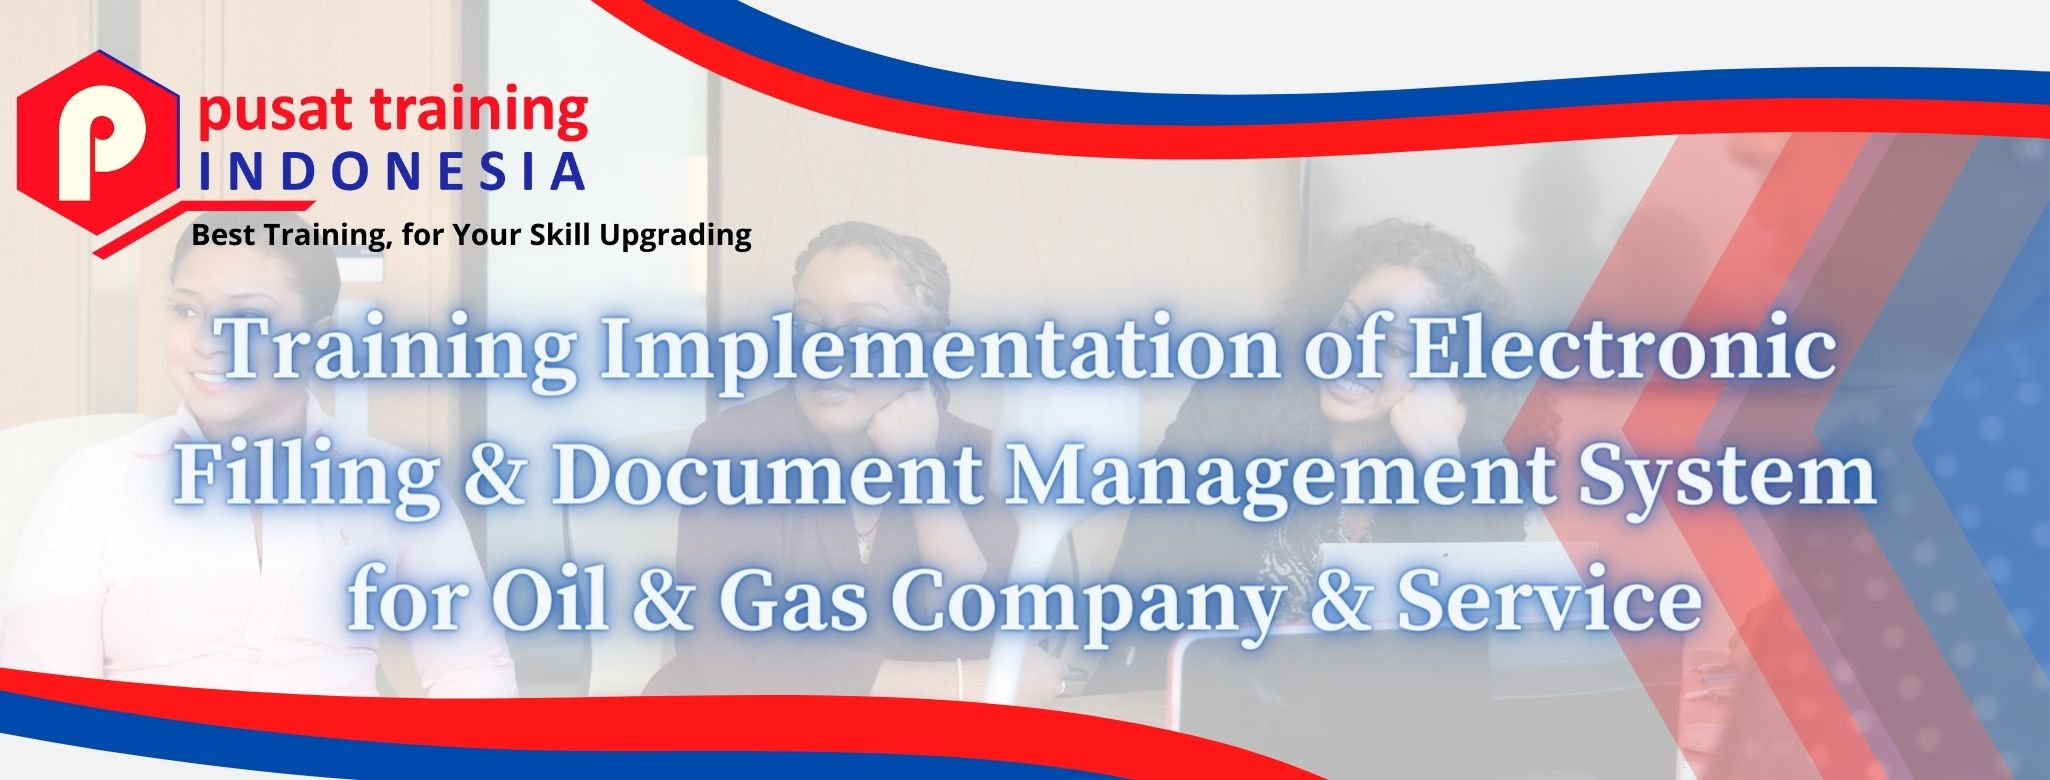 Training-Implementation-of-Electronic-Filling-Document-Management-System-for-Oil-Gas-Company-Service